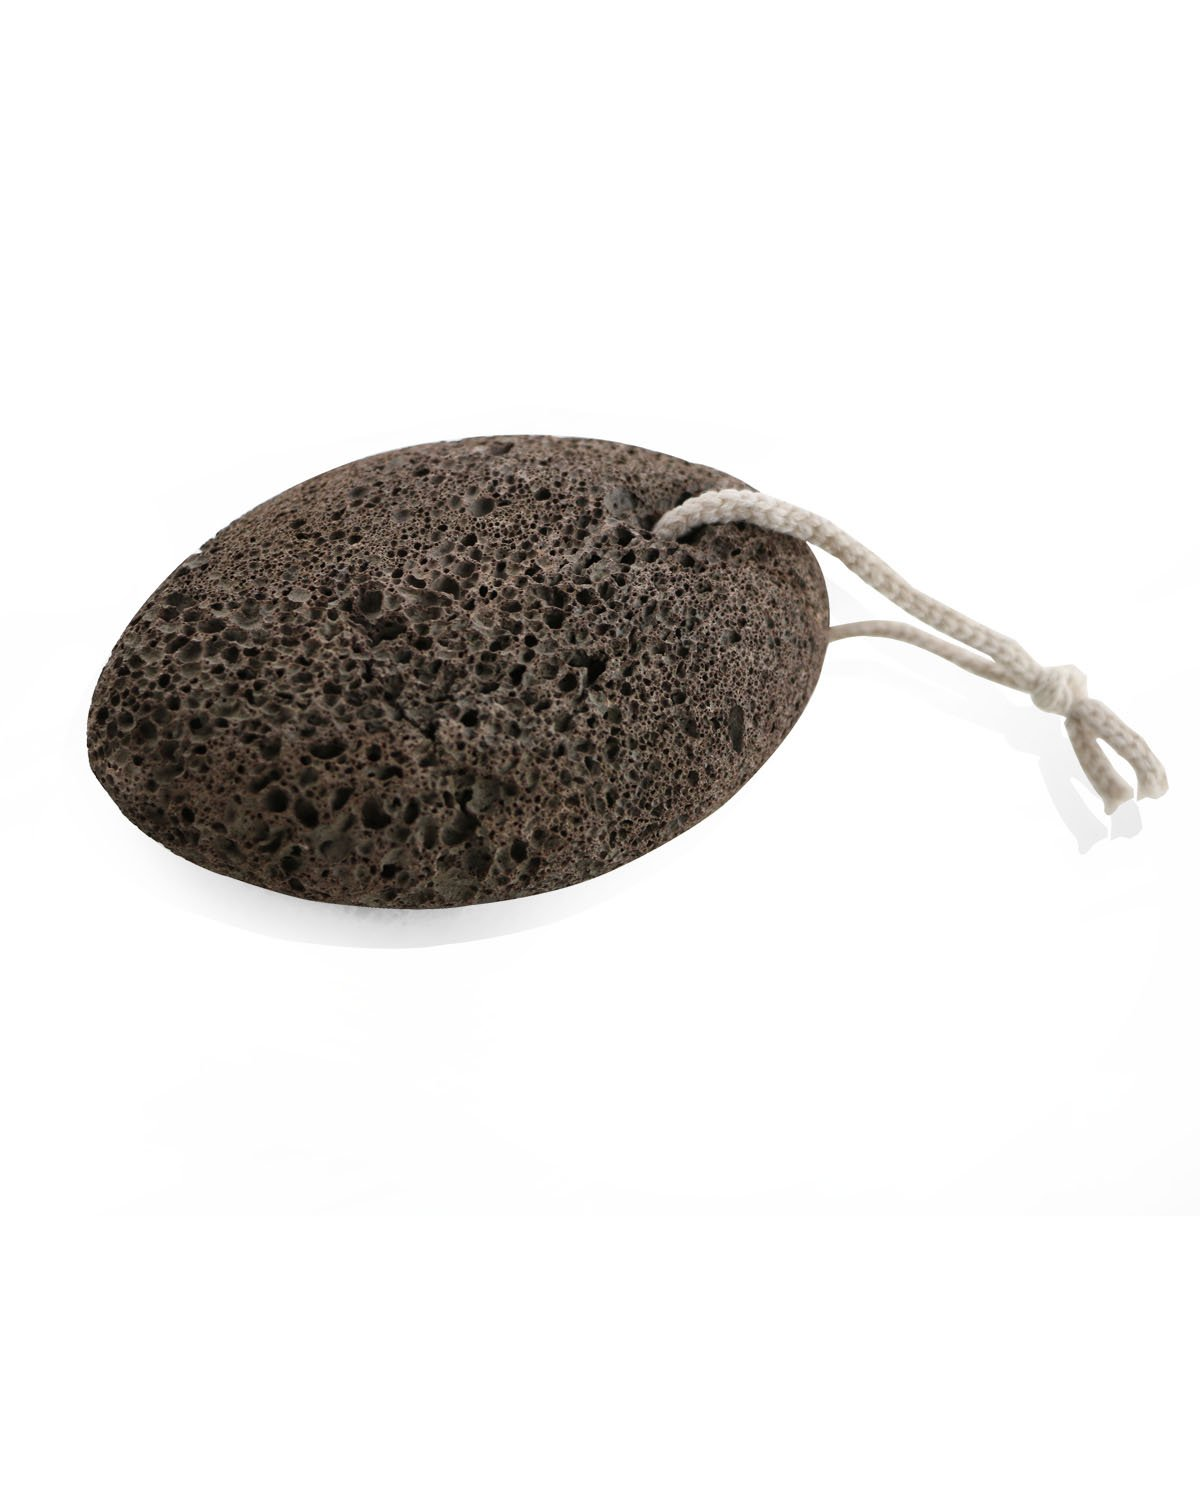 Oruuum Remove dead skin pumice, Grind foot stone, Exfoliate natural volcanic stone, Foot massage stone, Wipe foot stone.